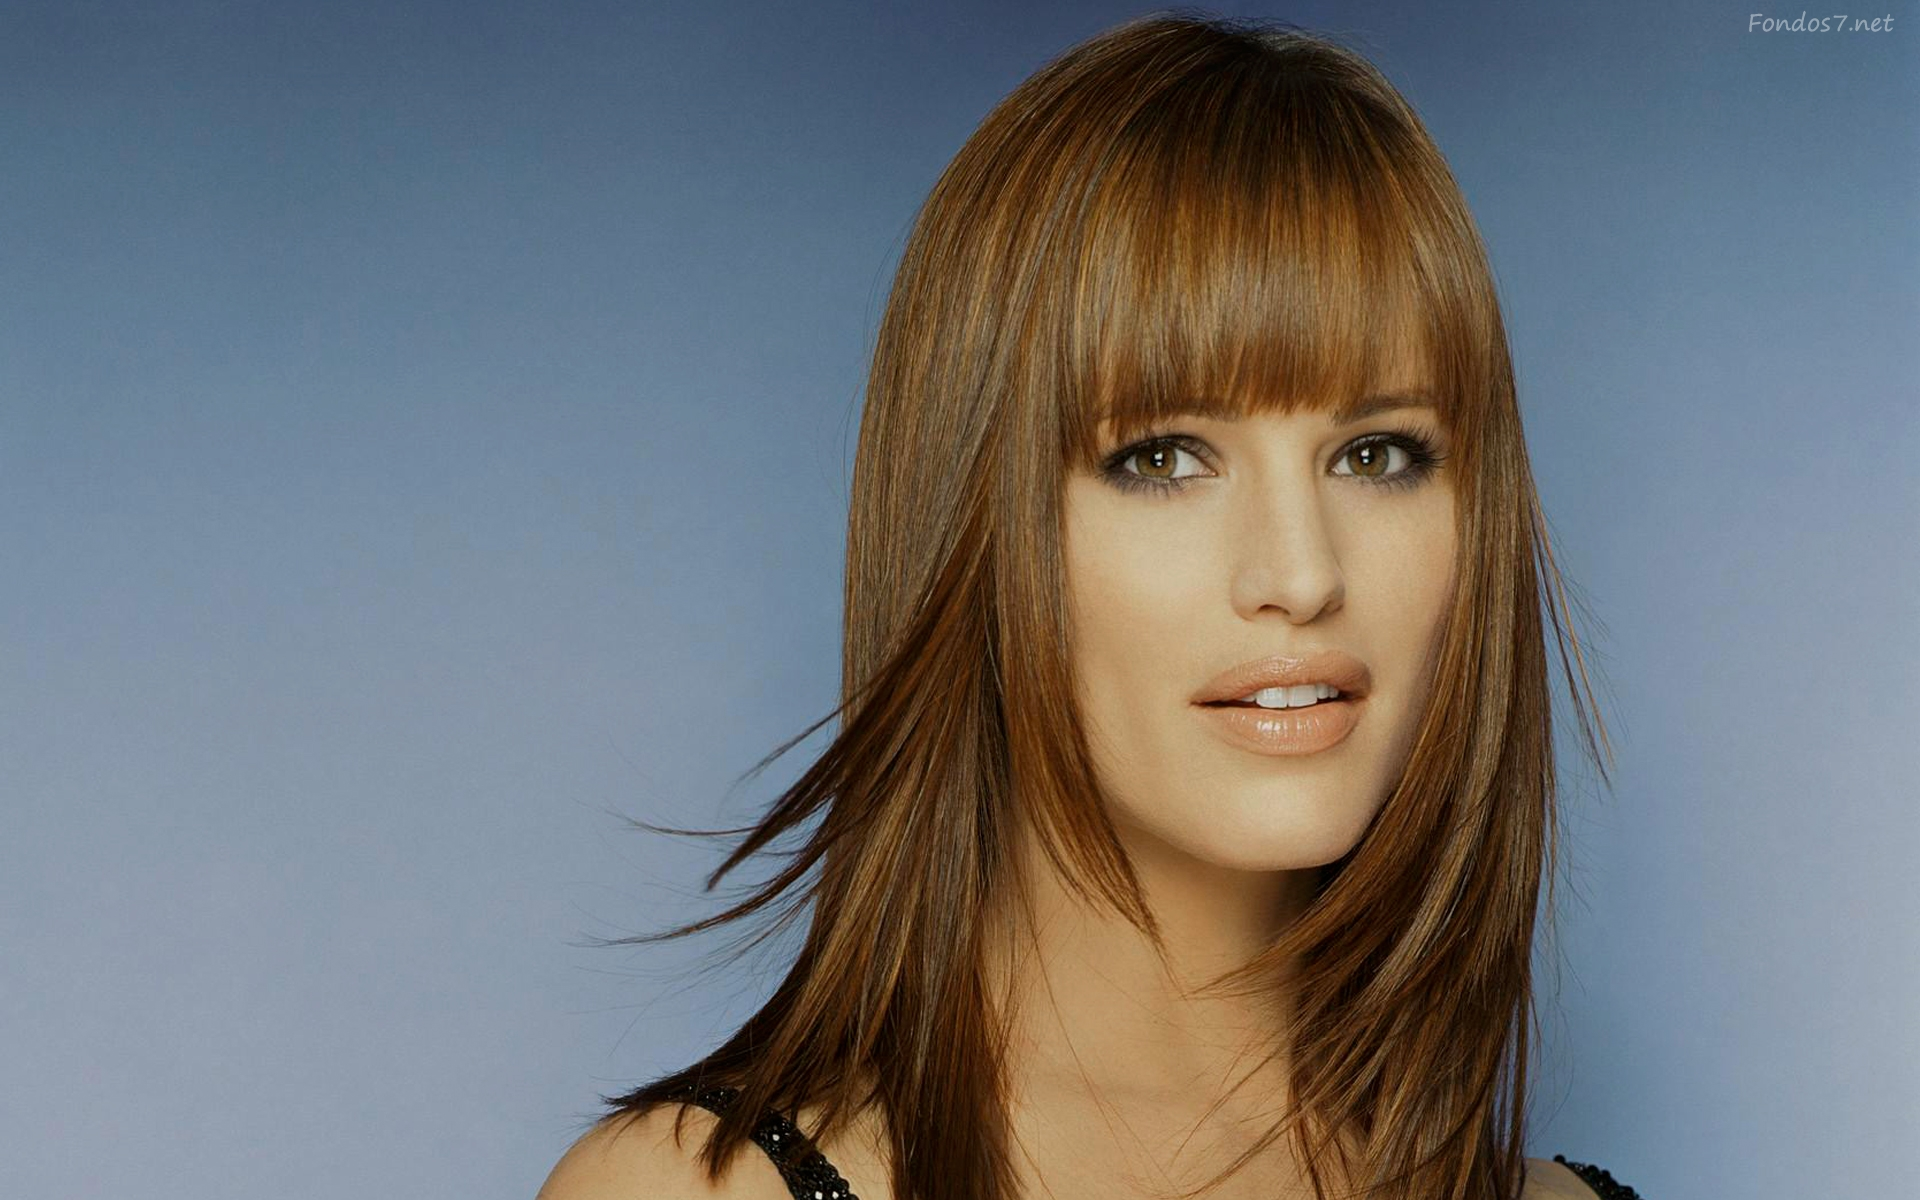 fondos7.net/wallpaper-original/wallpapers/Jennifer-Garner-503.jpg